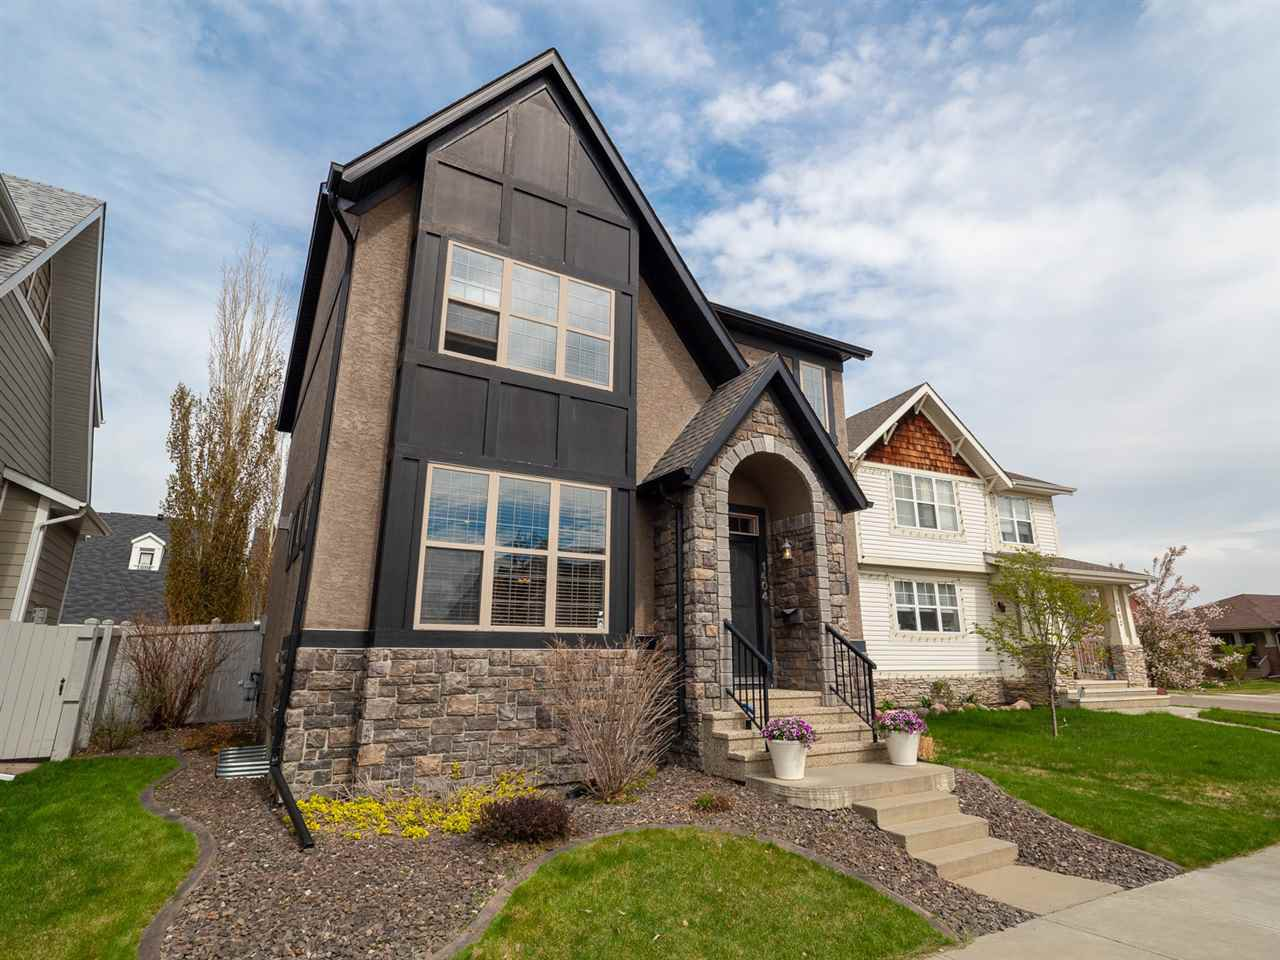 Main Photo: 1404 CYPRUS Way in Edmonton: Zone 27 House for sale : MLS®# E4197939